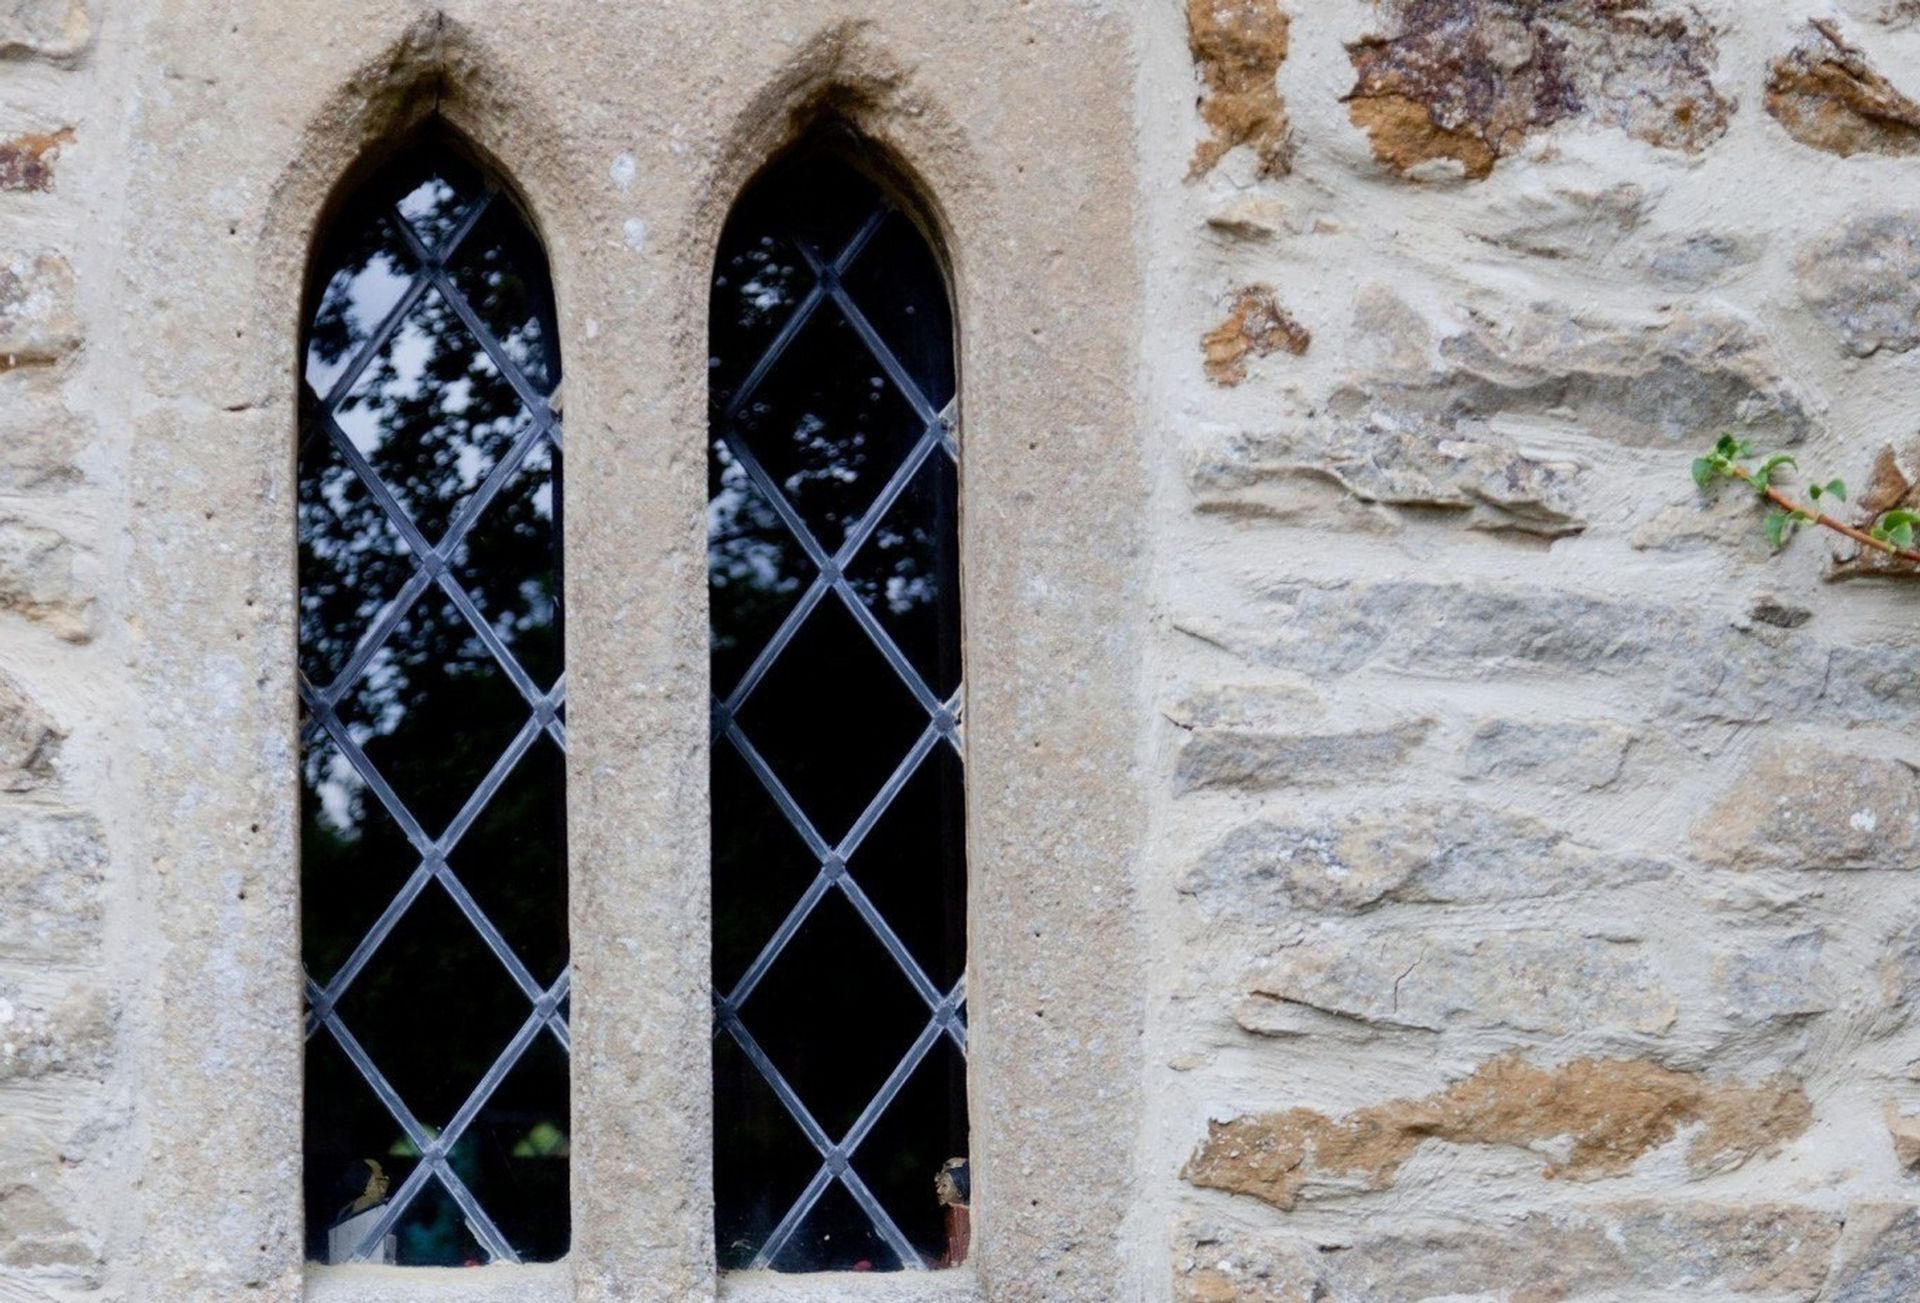 Exterior wall and window detail